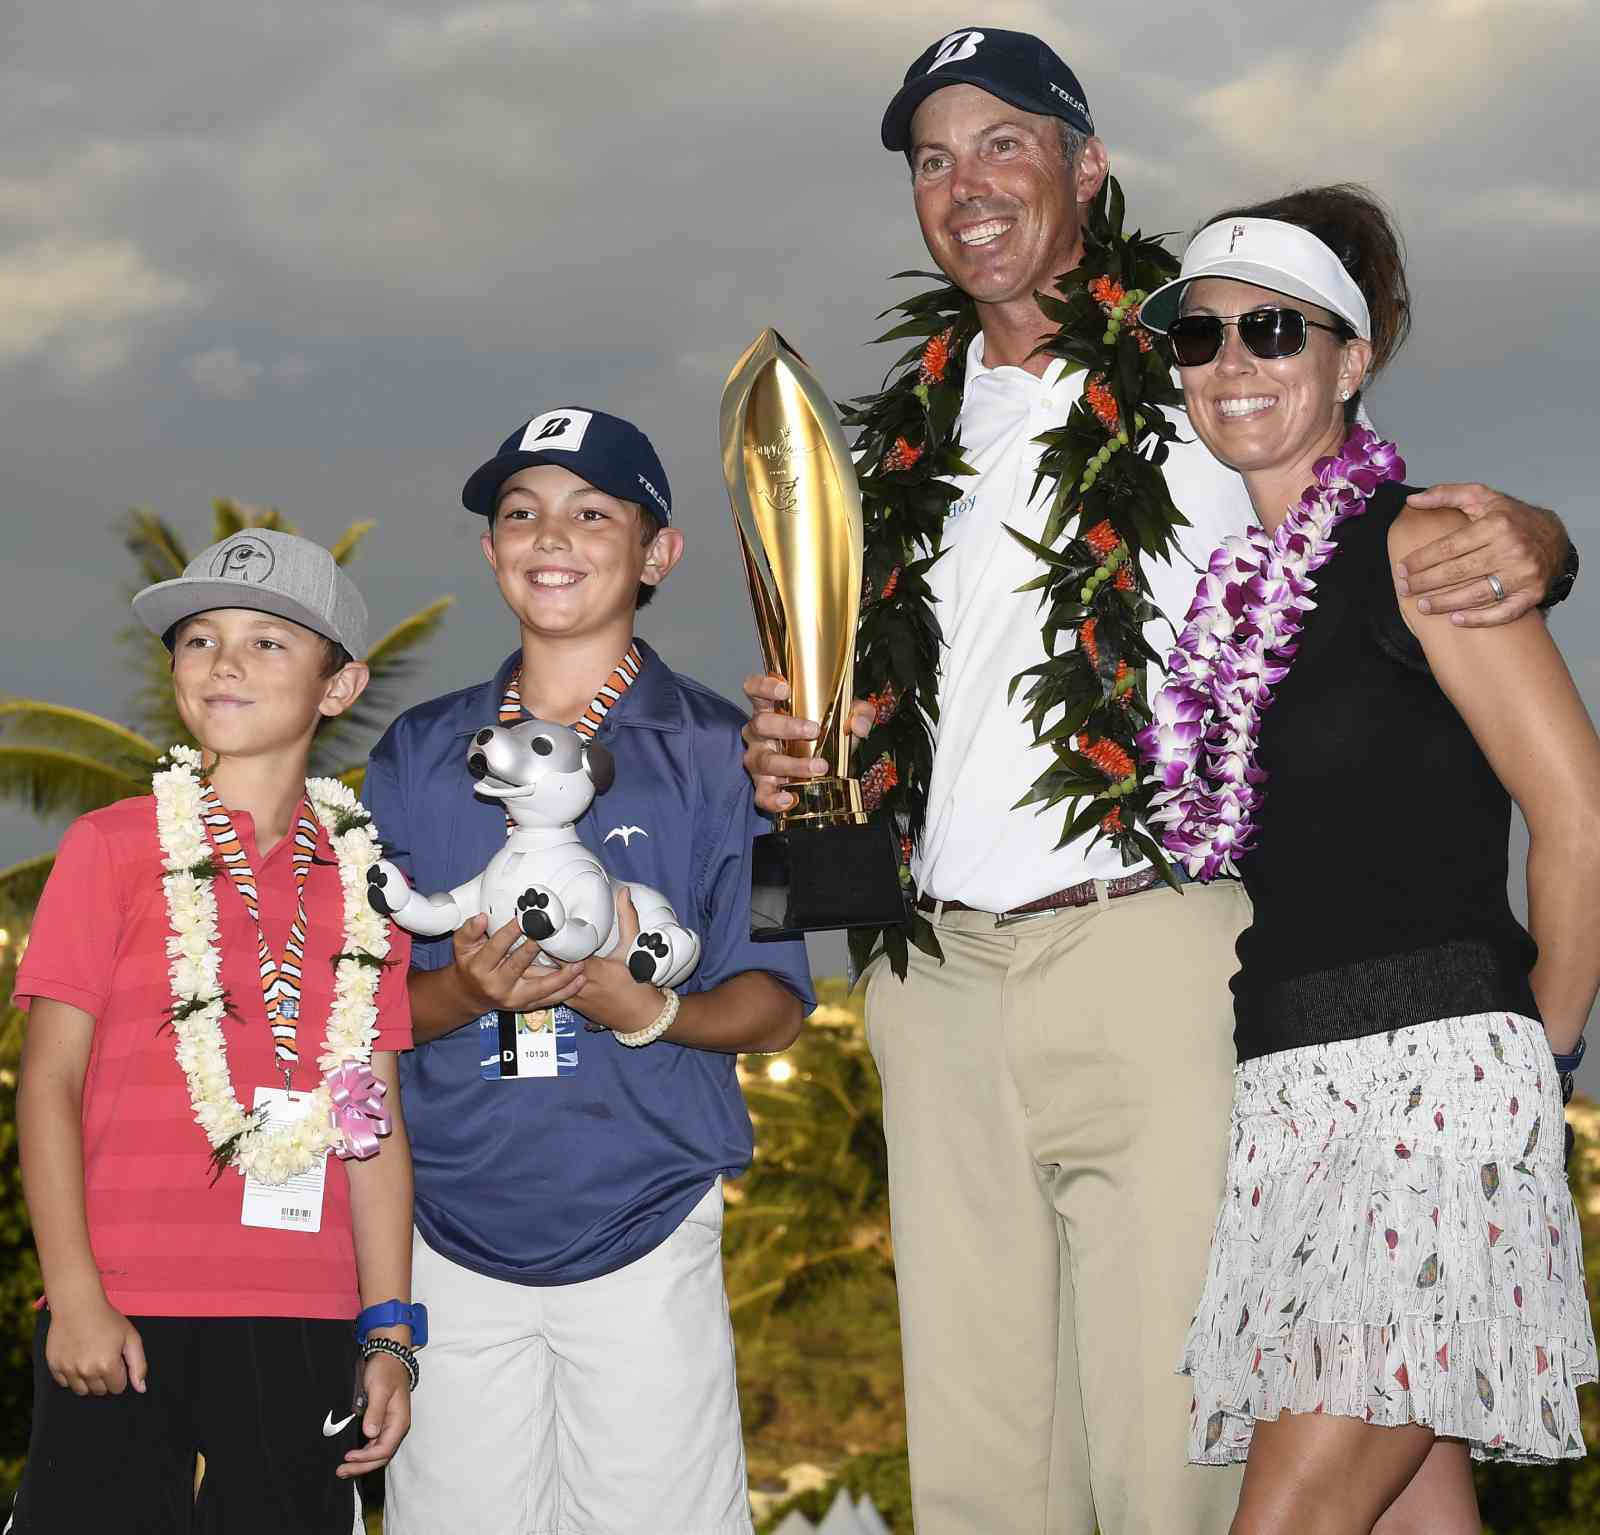 Matt Kuchar wife Sybi and sons Cameron and Carson